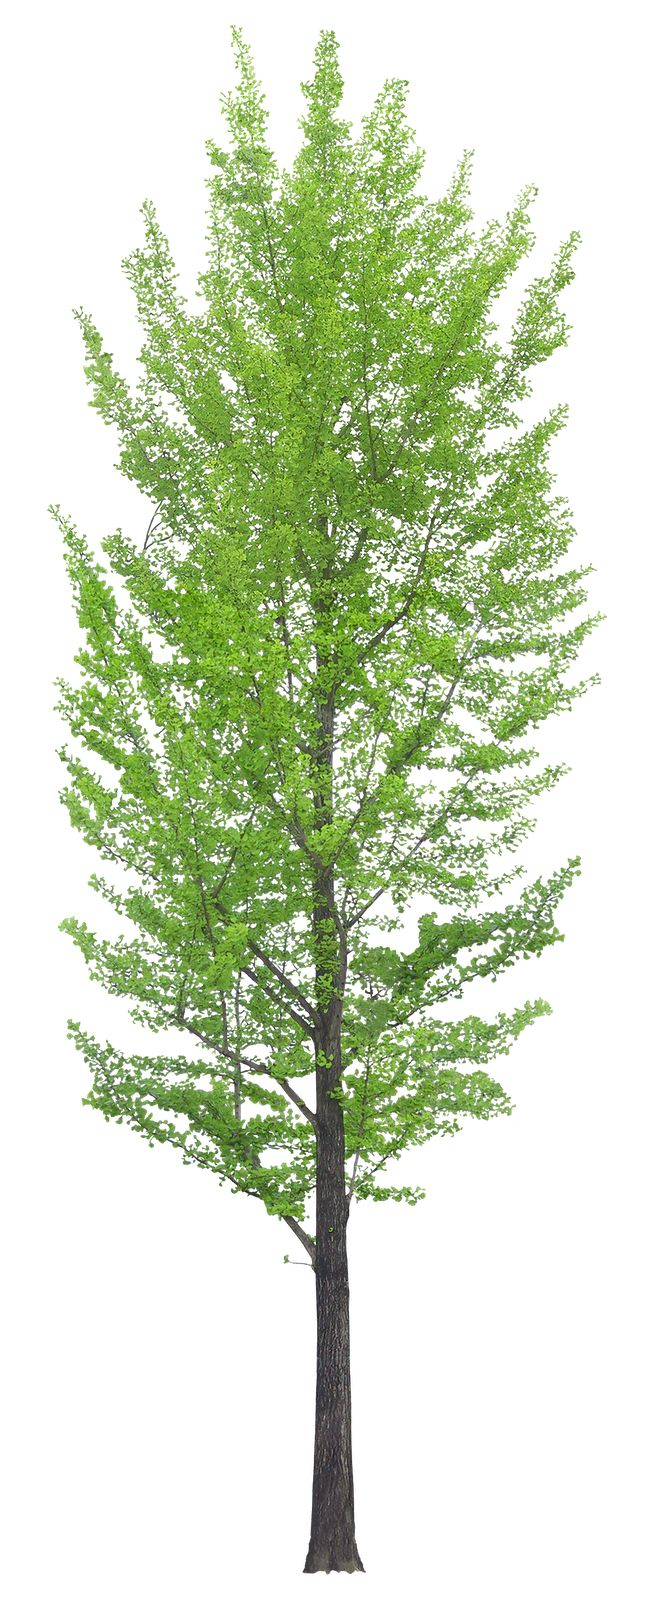 Top view plants 02 2d plant entourage for architecture - 02 Png 661 1600